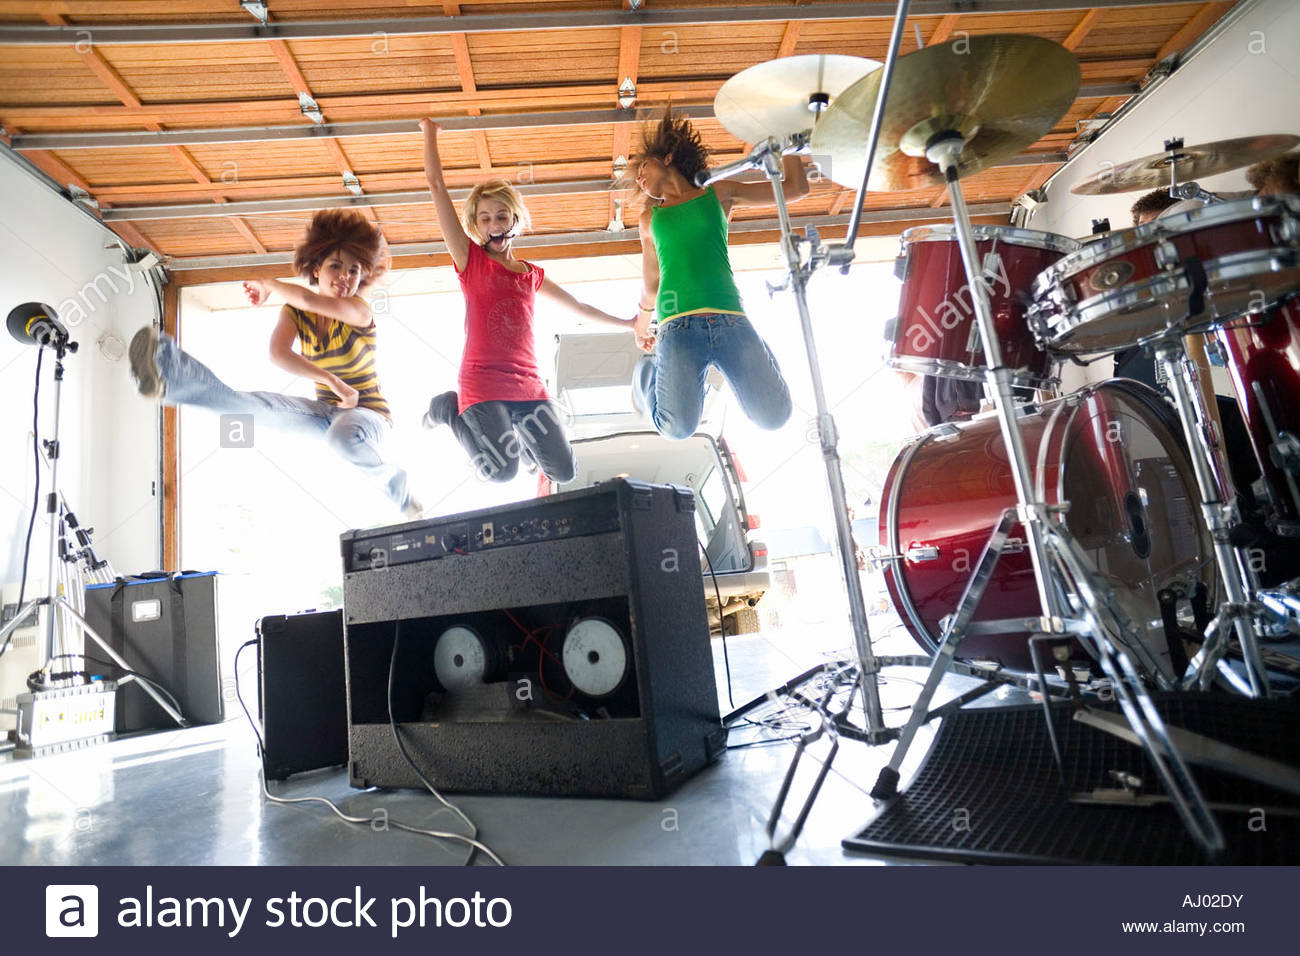 Three teenage girls  jumping in air by drum kit and amplifiers, smiling, low angle view - Stock Image